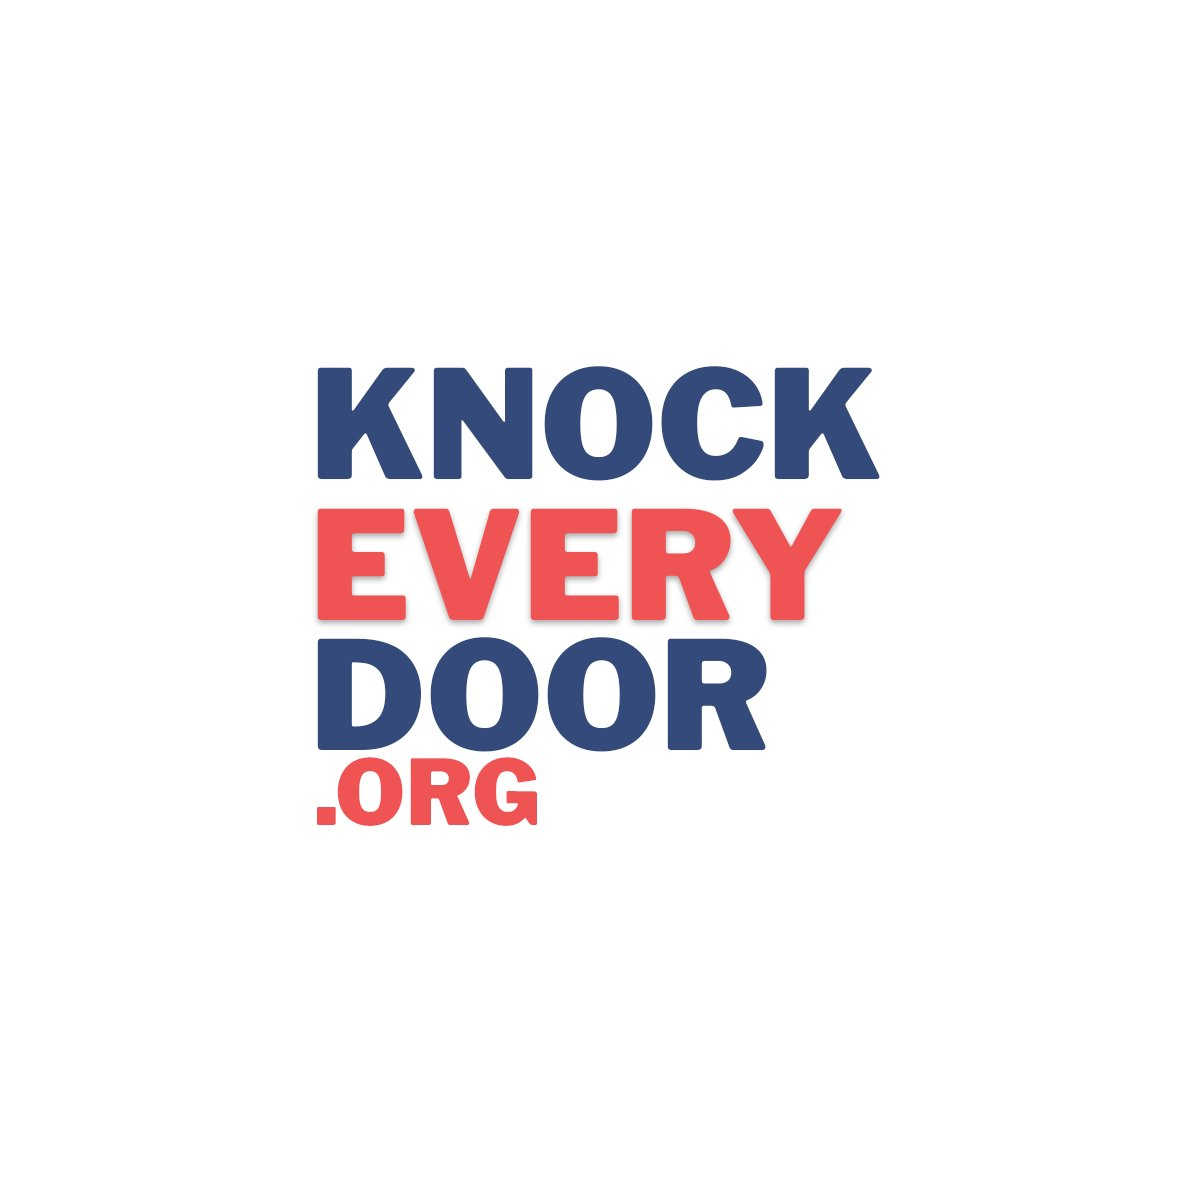 Action of the day: sign up to#KnockEveryDoor